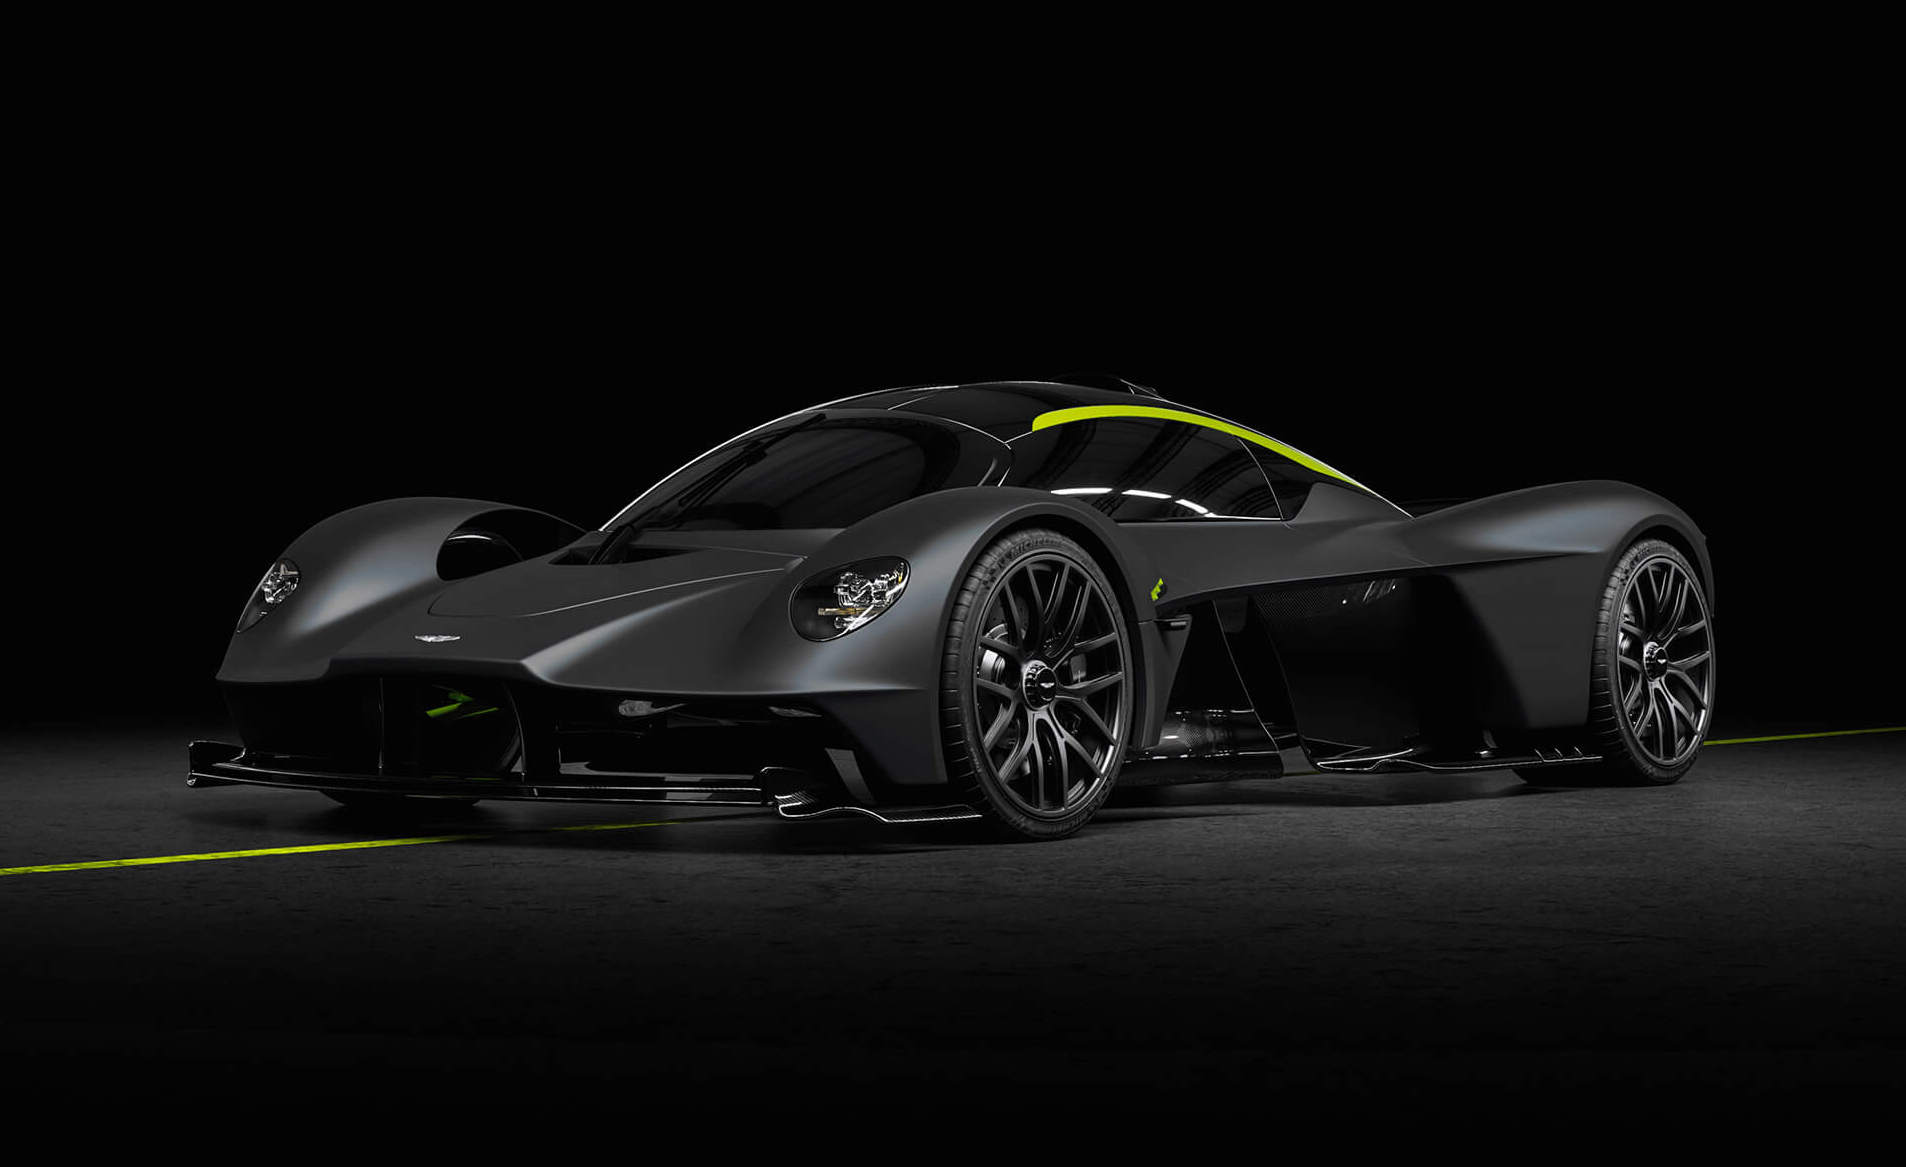 For Sale Aston Martin Valkyrie With 100km On The Clock Performancedrive